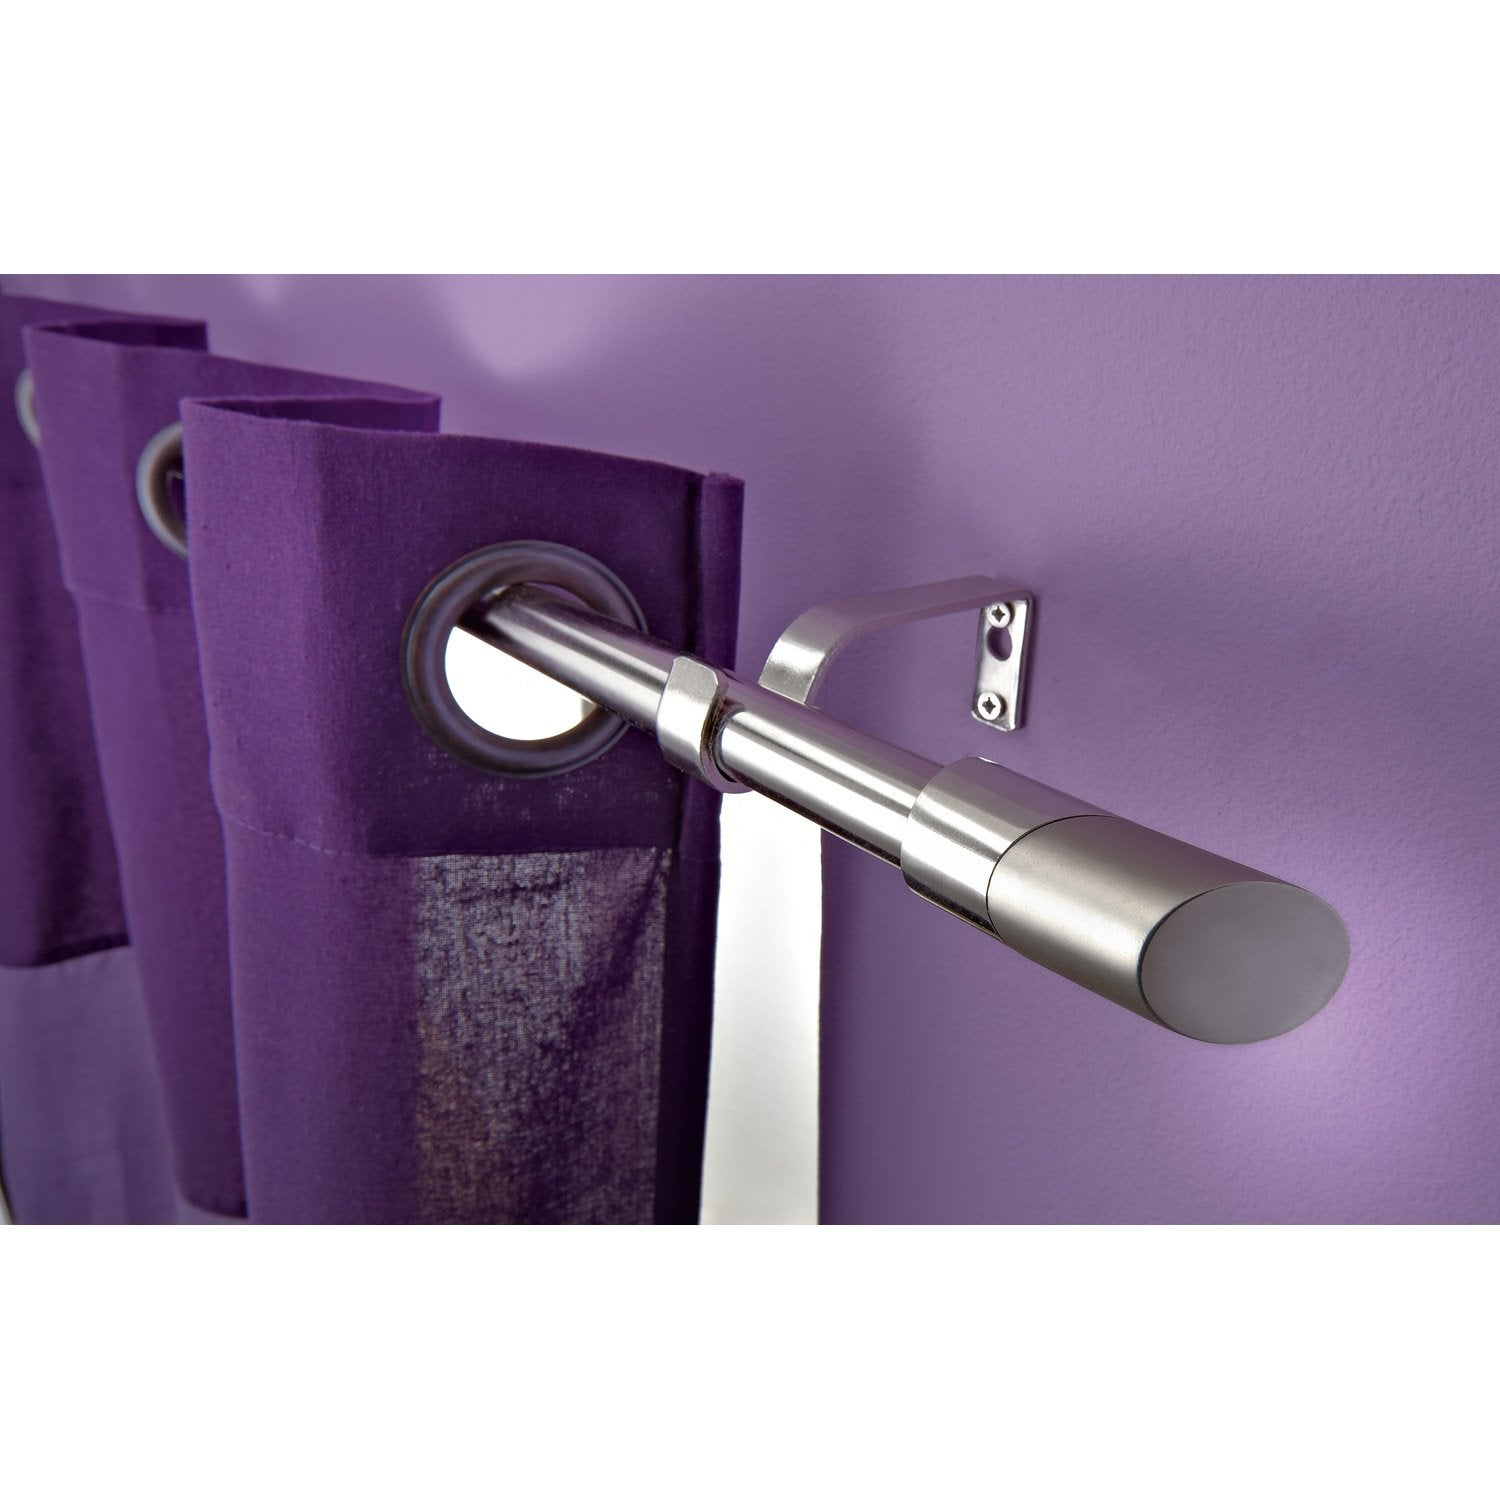 Kit de tringle rideau twin diam 16 19 mm gris satin - Tringle de porte leroy merlin ...